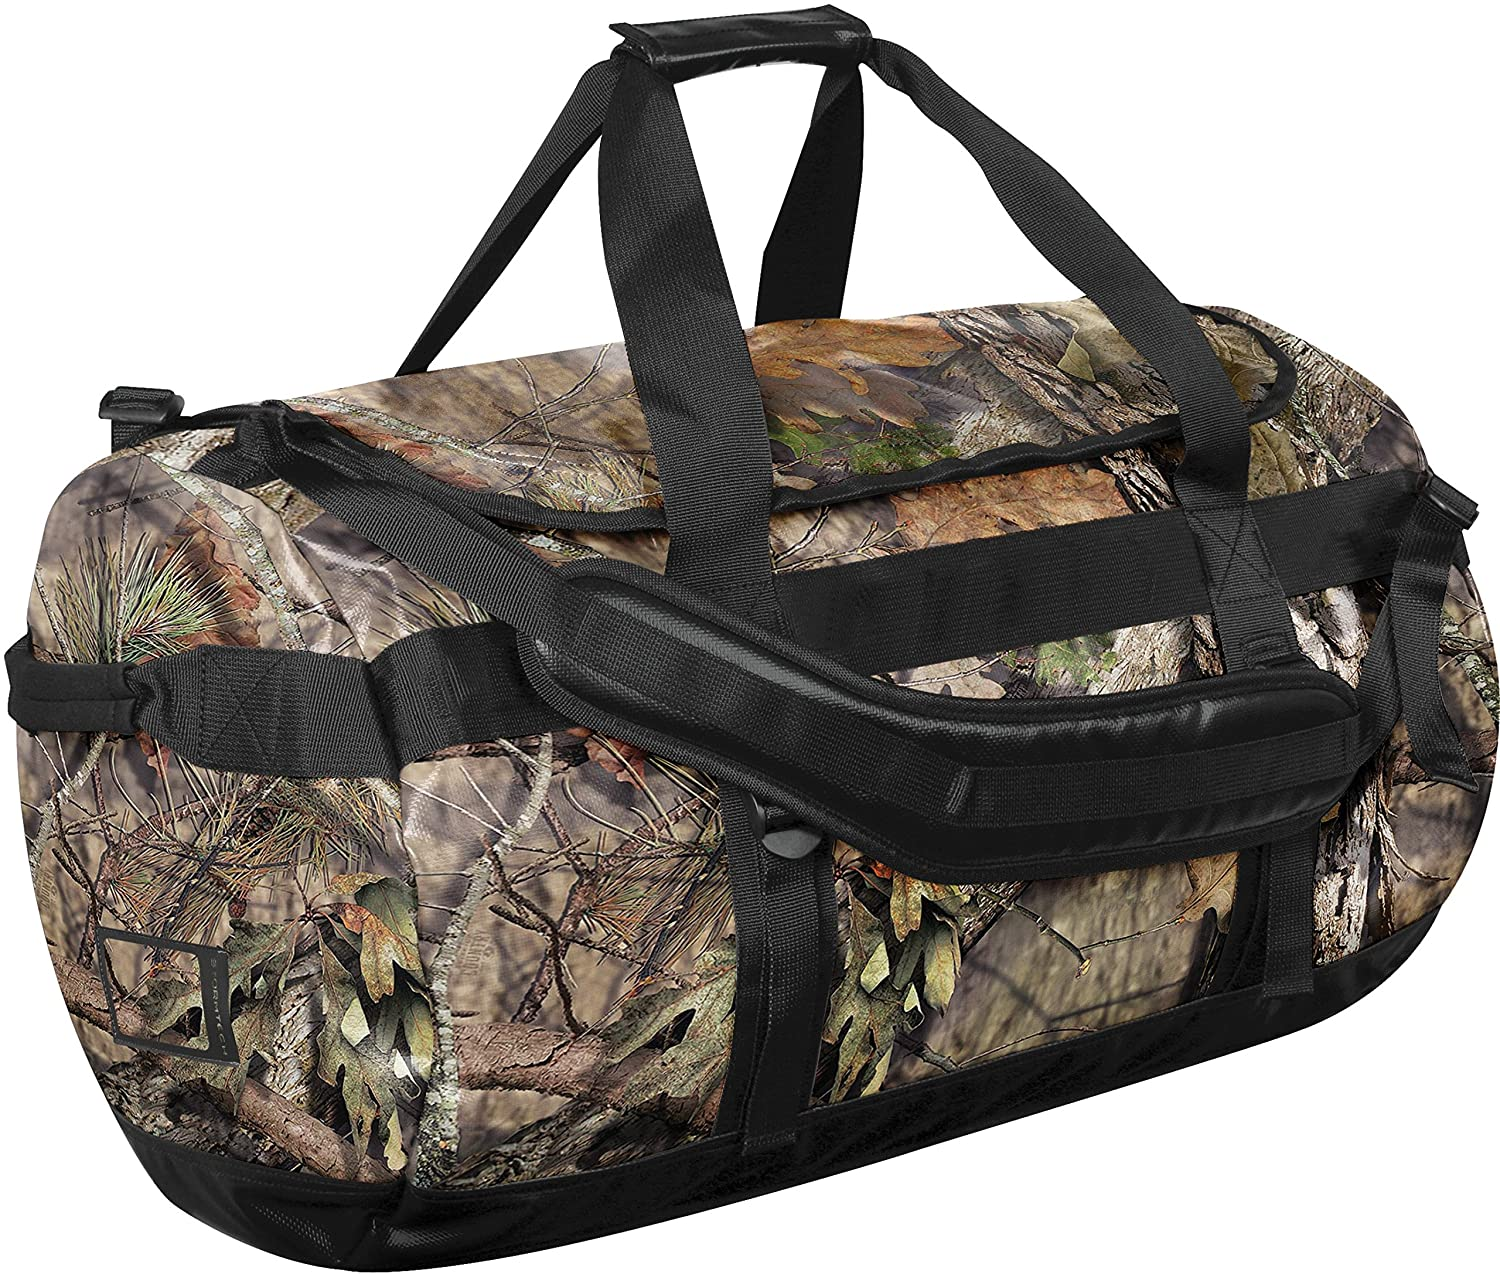 Stormtech Atlantis Waterproof Mossy Oak Gear Bag Large